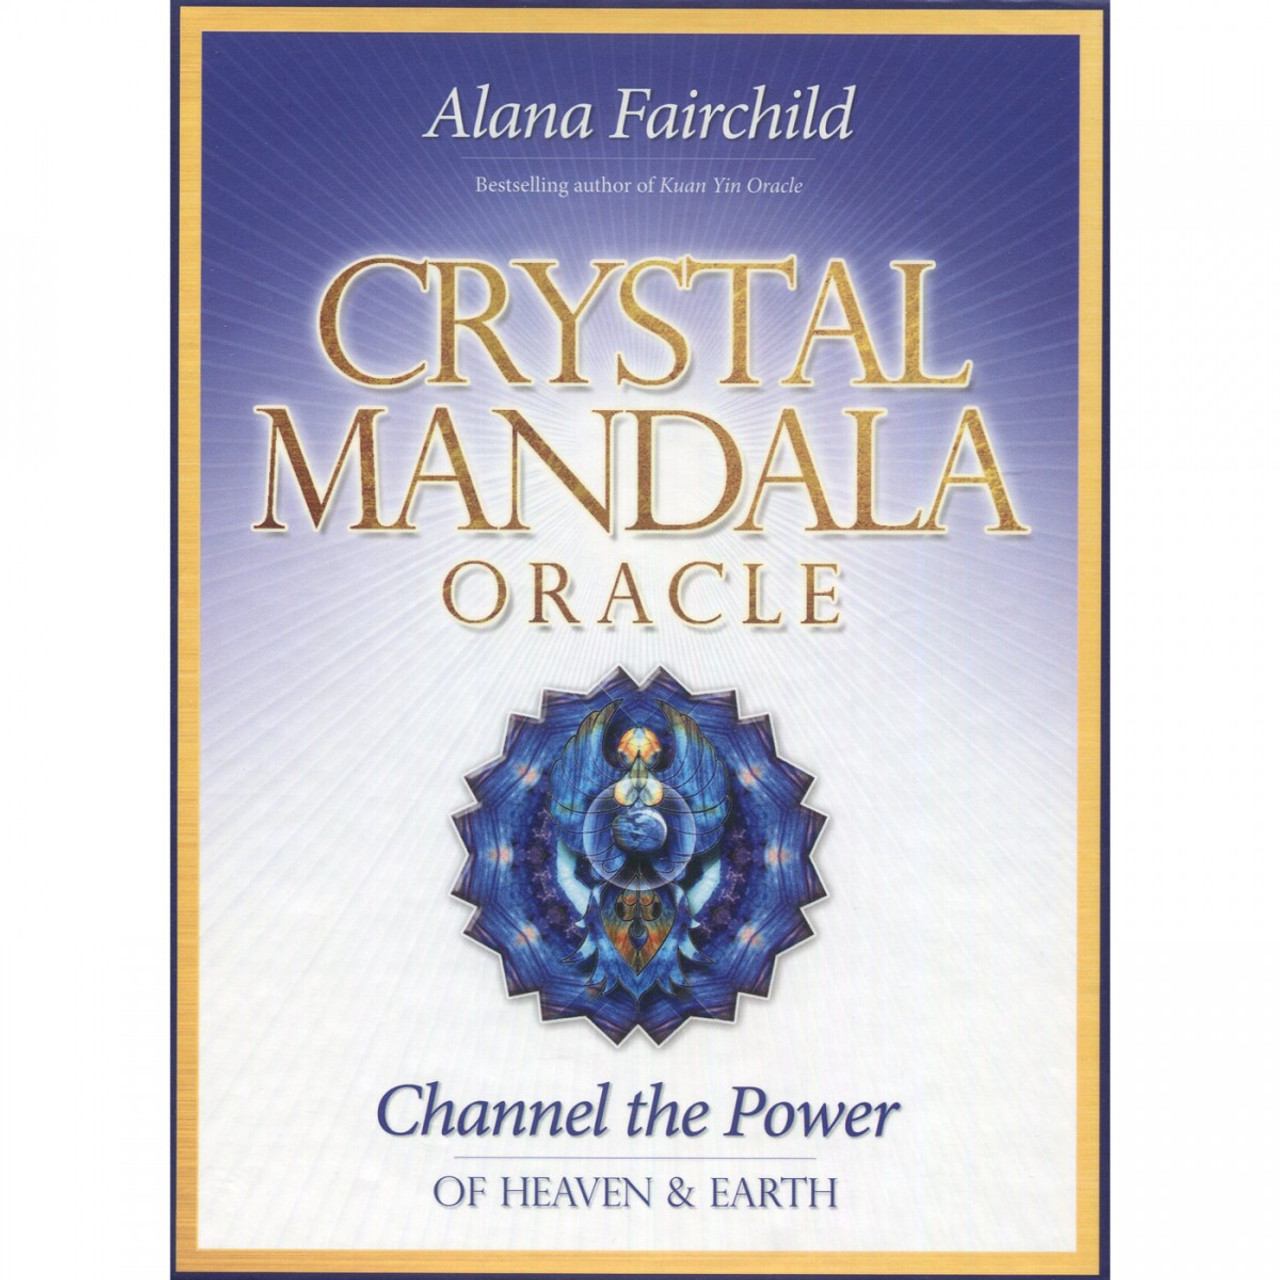 Crystal Mandala Oracle by Alana Fairchild